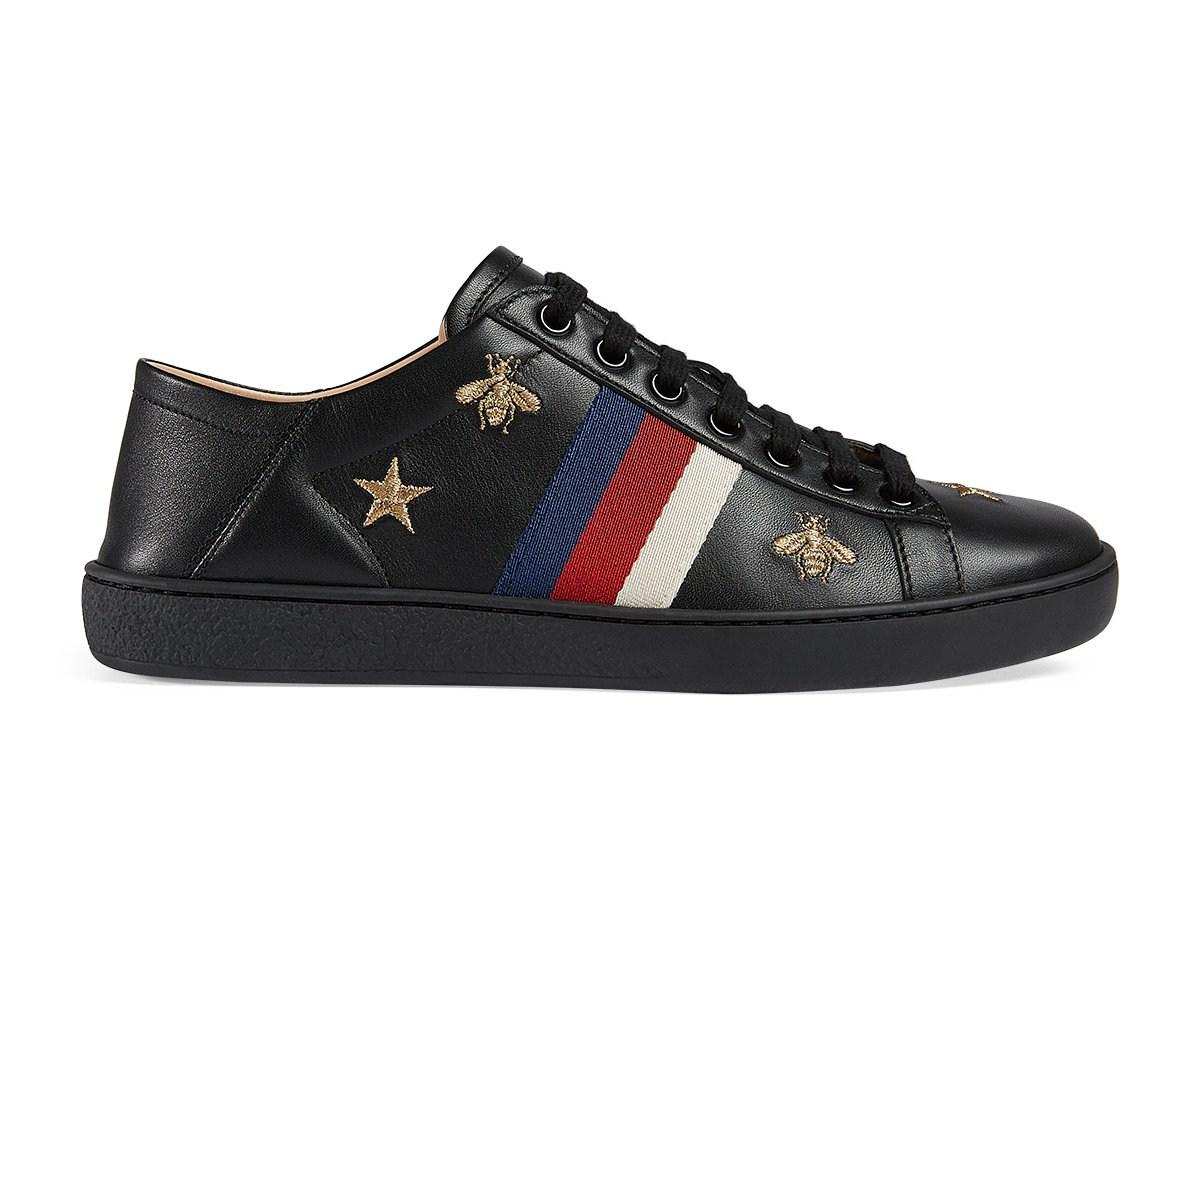 eadfd82bd0a Lyst - Gucci New Ace Embroidered Leather Sneakers in Black